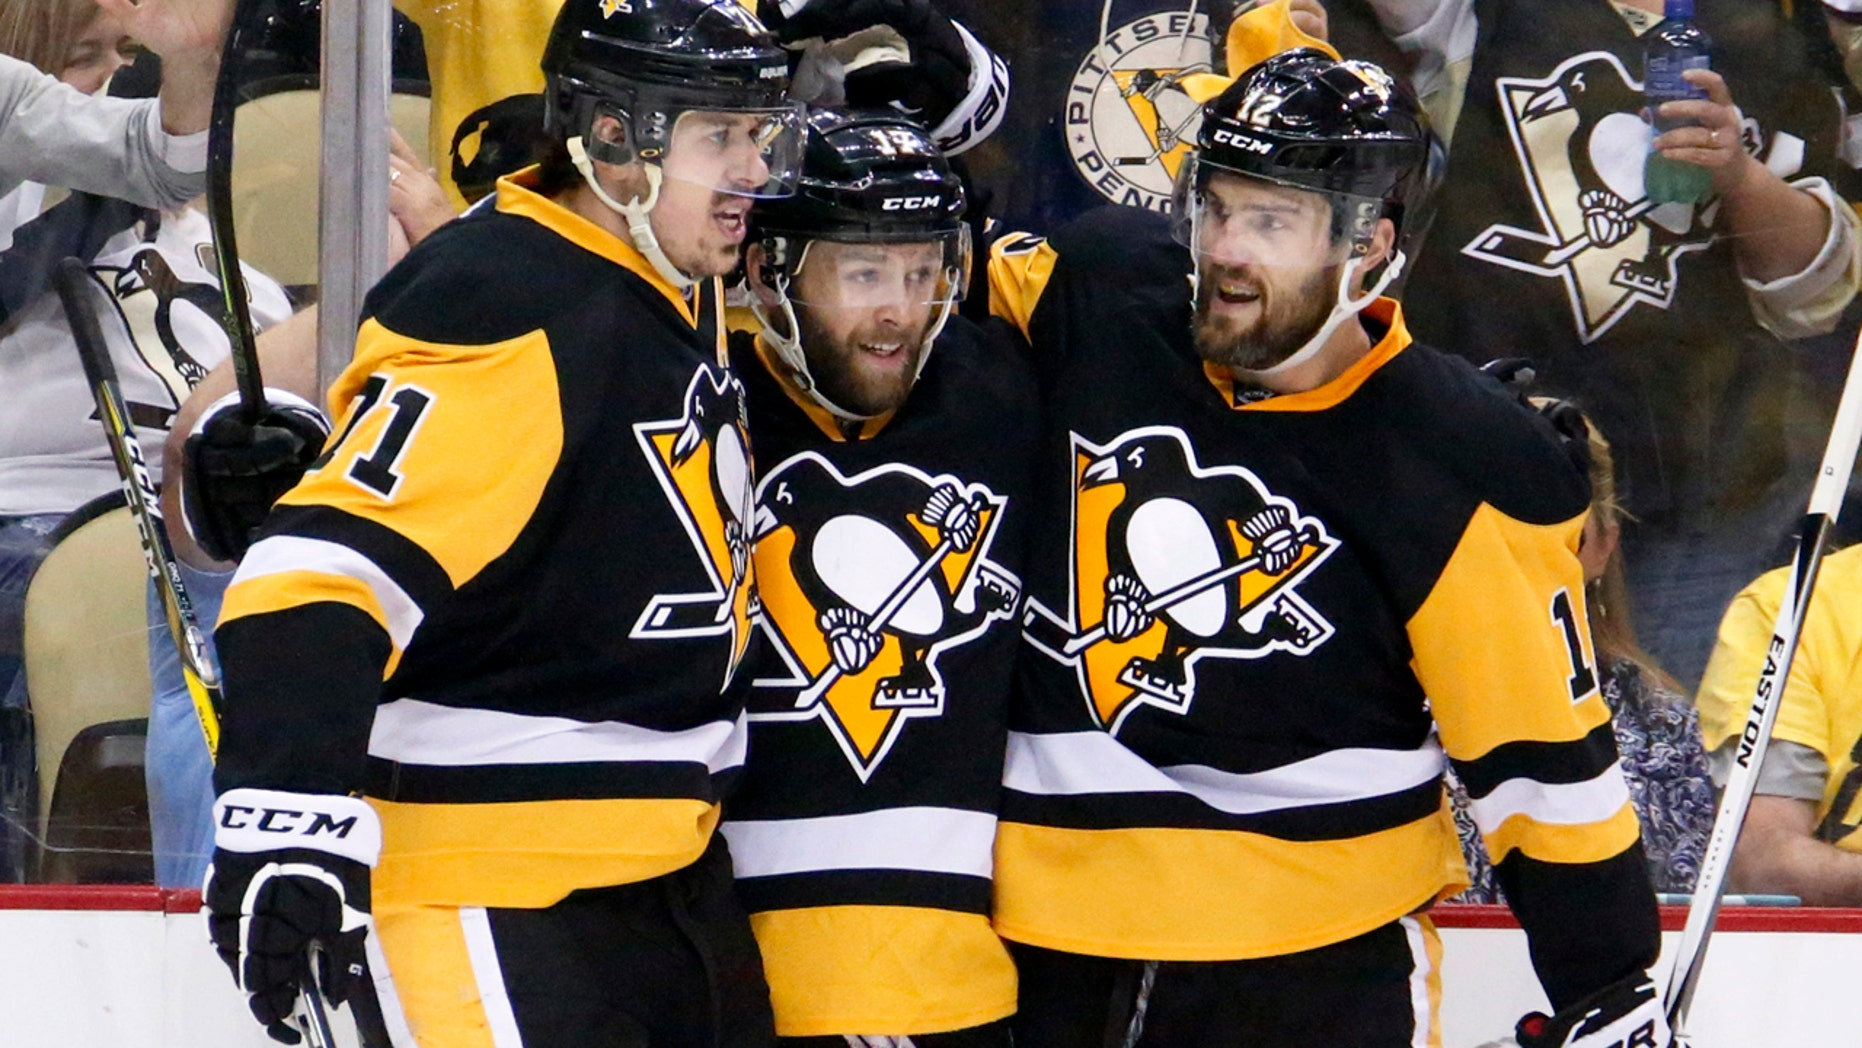 May 26, 2016: Pittsburgh Penguins' Bryan Rust, center, is congratulated by teammates Evgeni Malkin, left, and Ben Lovejoy after scoring against the Tampa Bay Lightning during the second period of Game 7 of the NHL Eastern Conference finals in Pittsburgh.